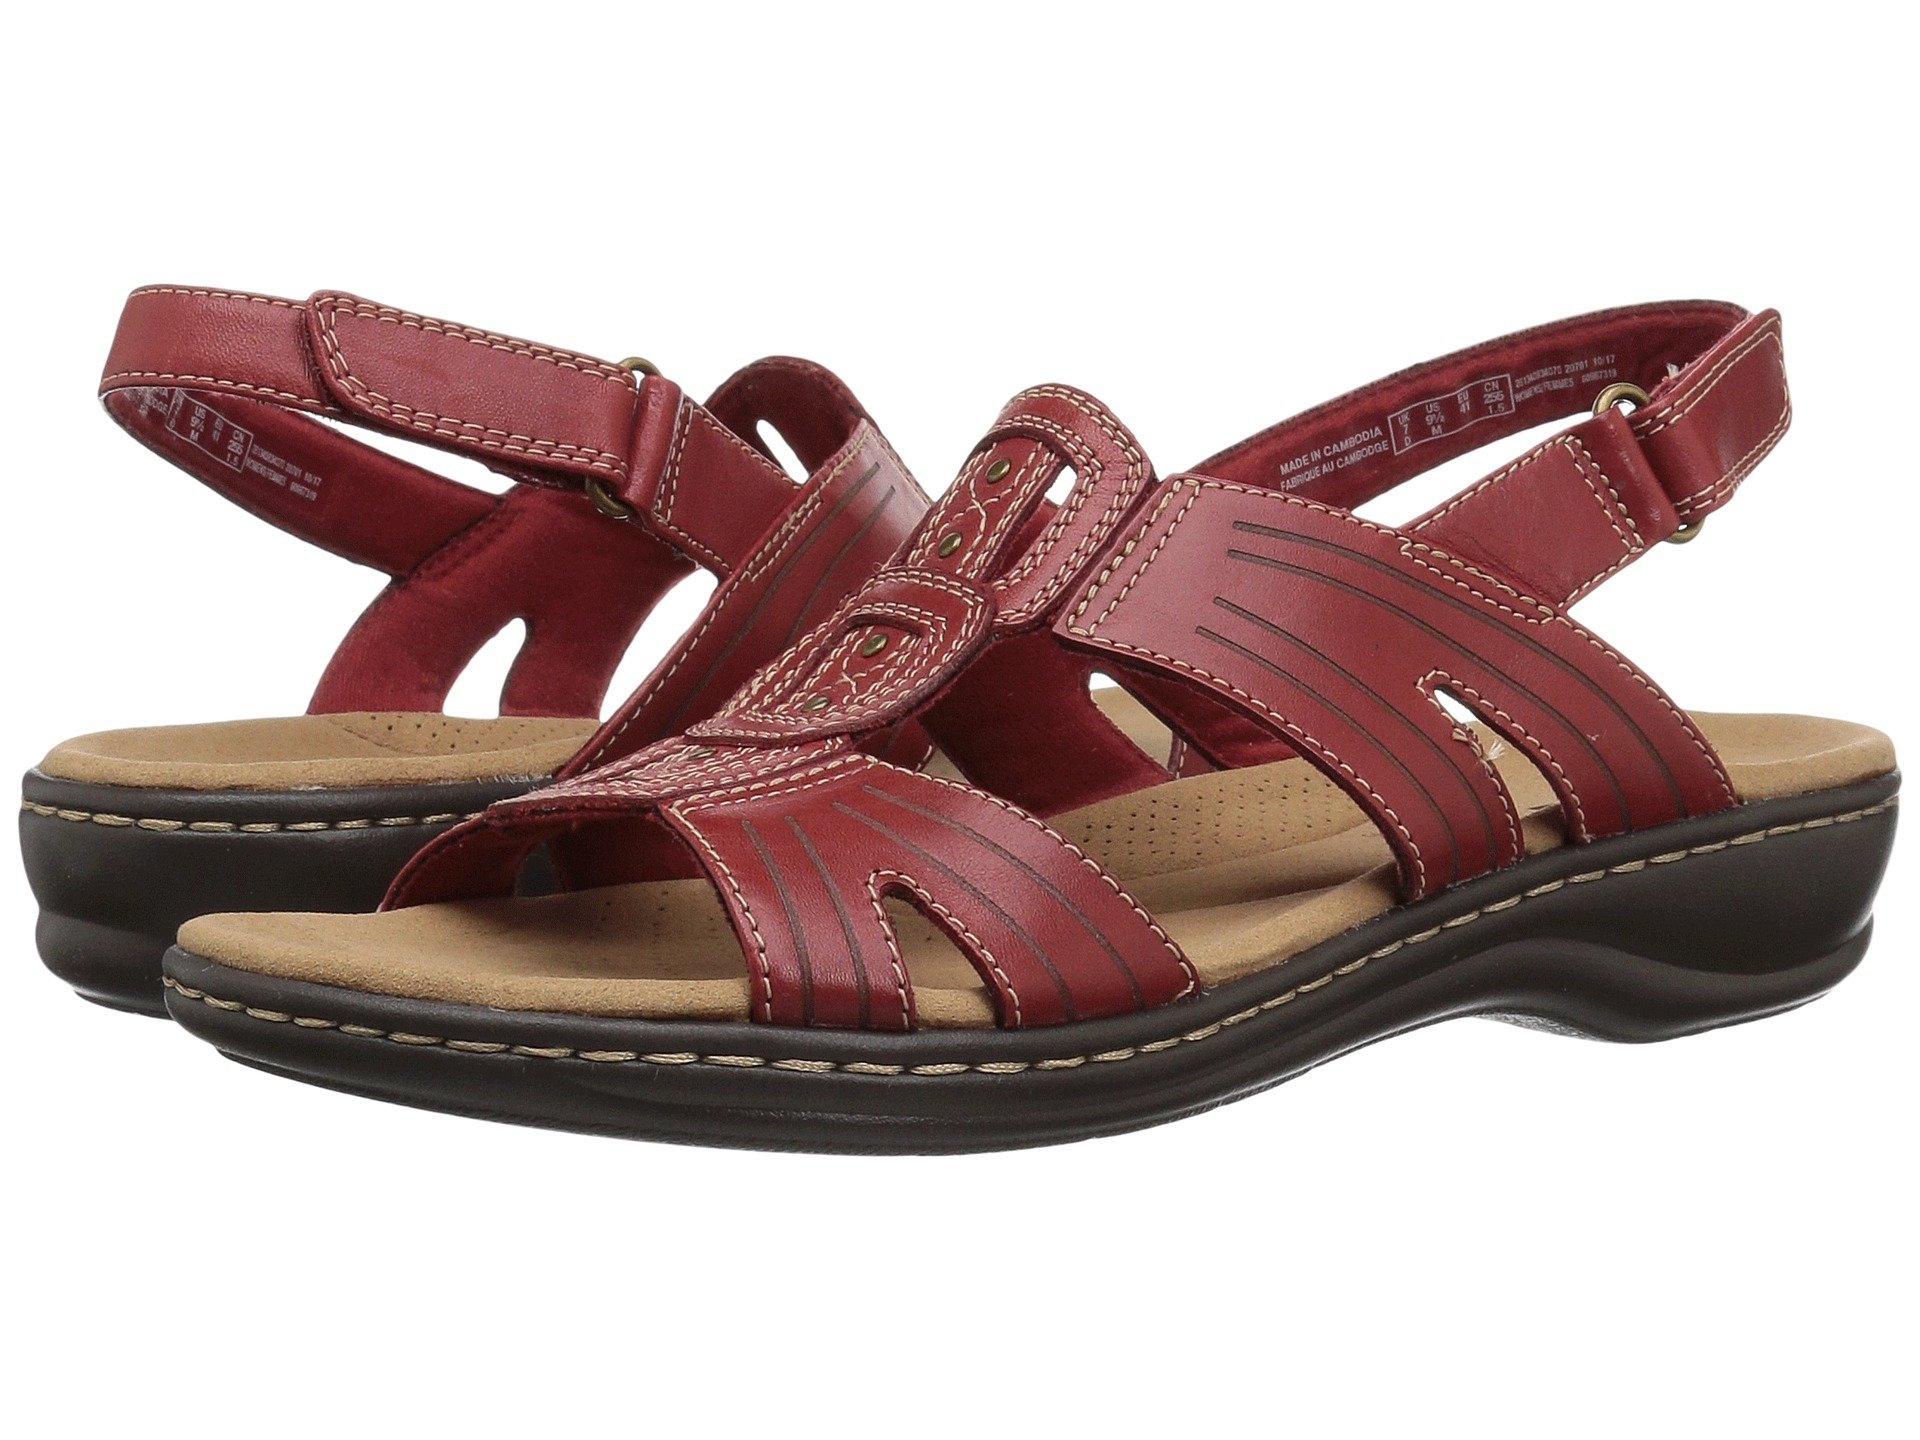 CLARKS Leisa Vine, Red Leather